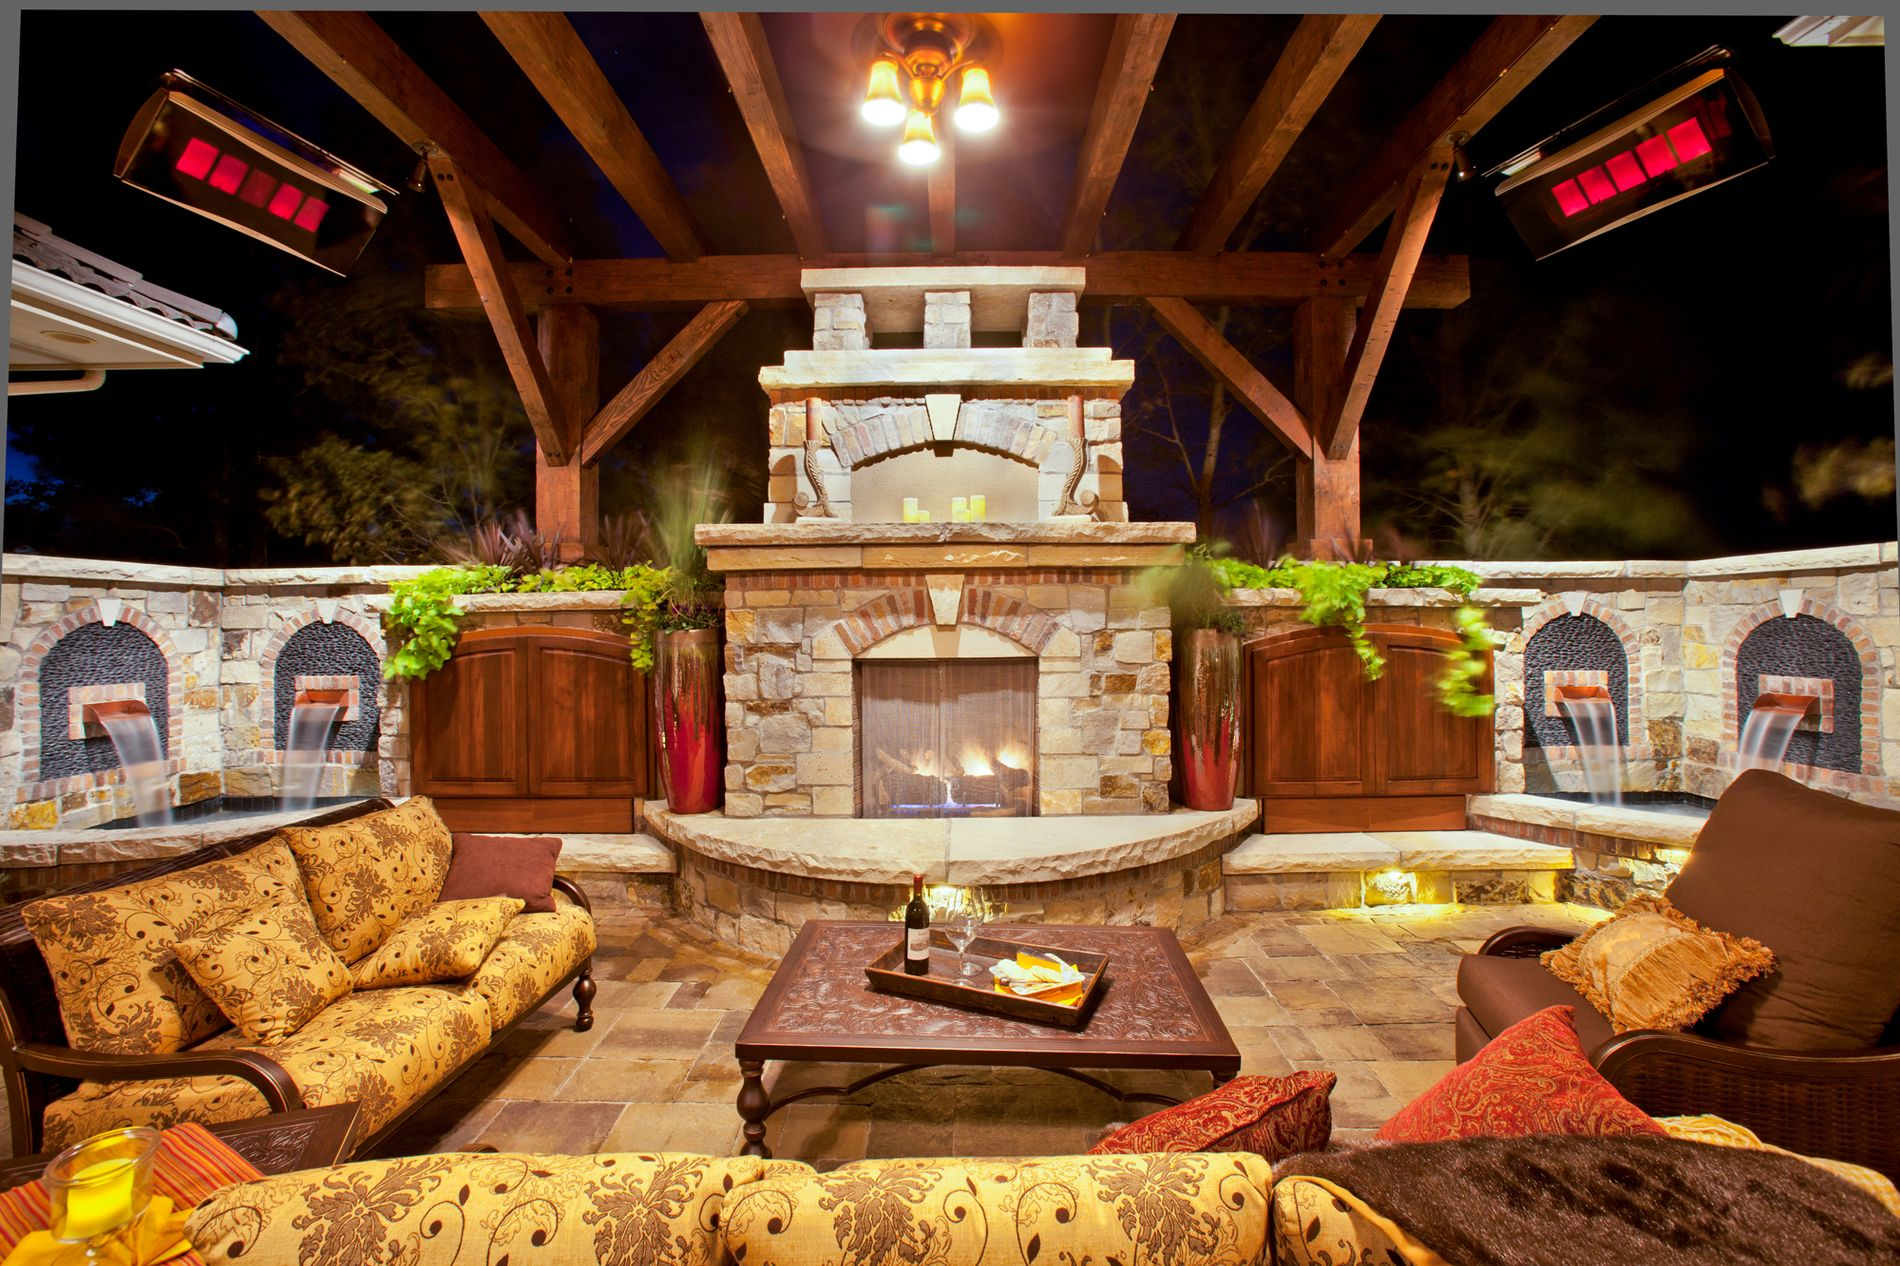 Outdoor Fireplace and Shade Structure